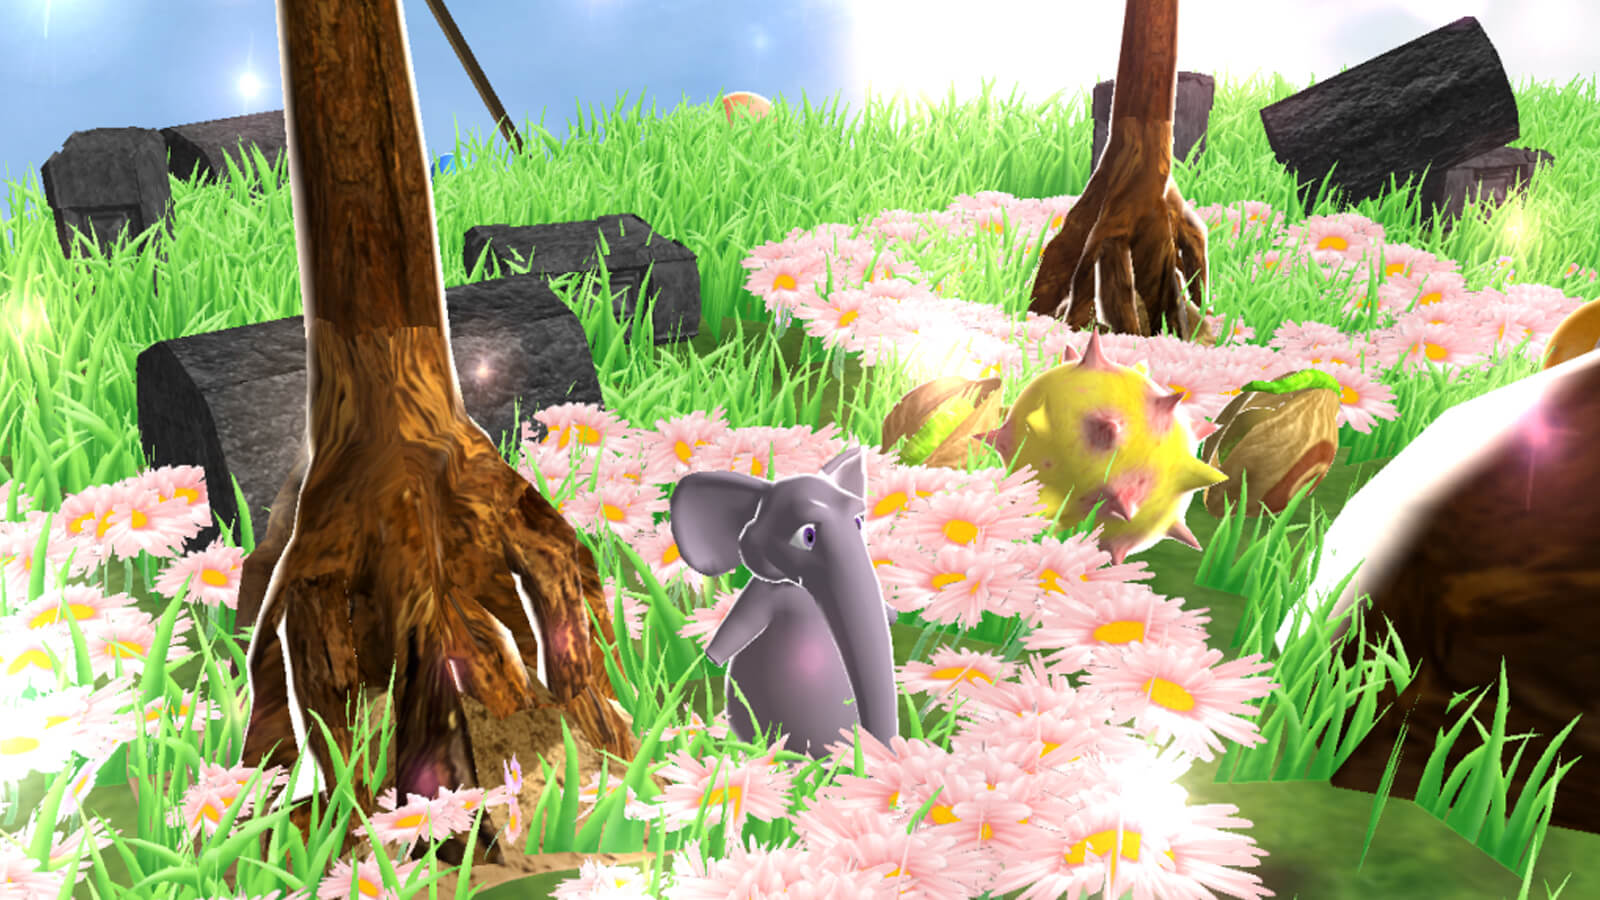 An elephant stands in a field of pink flowers.